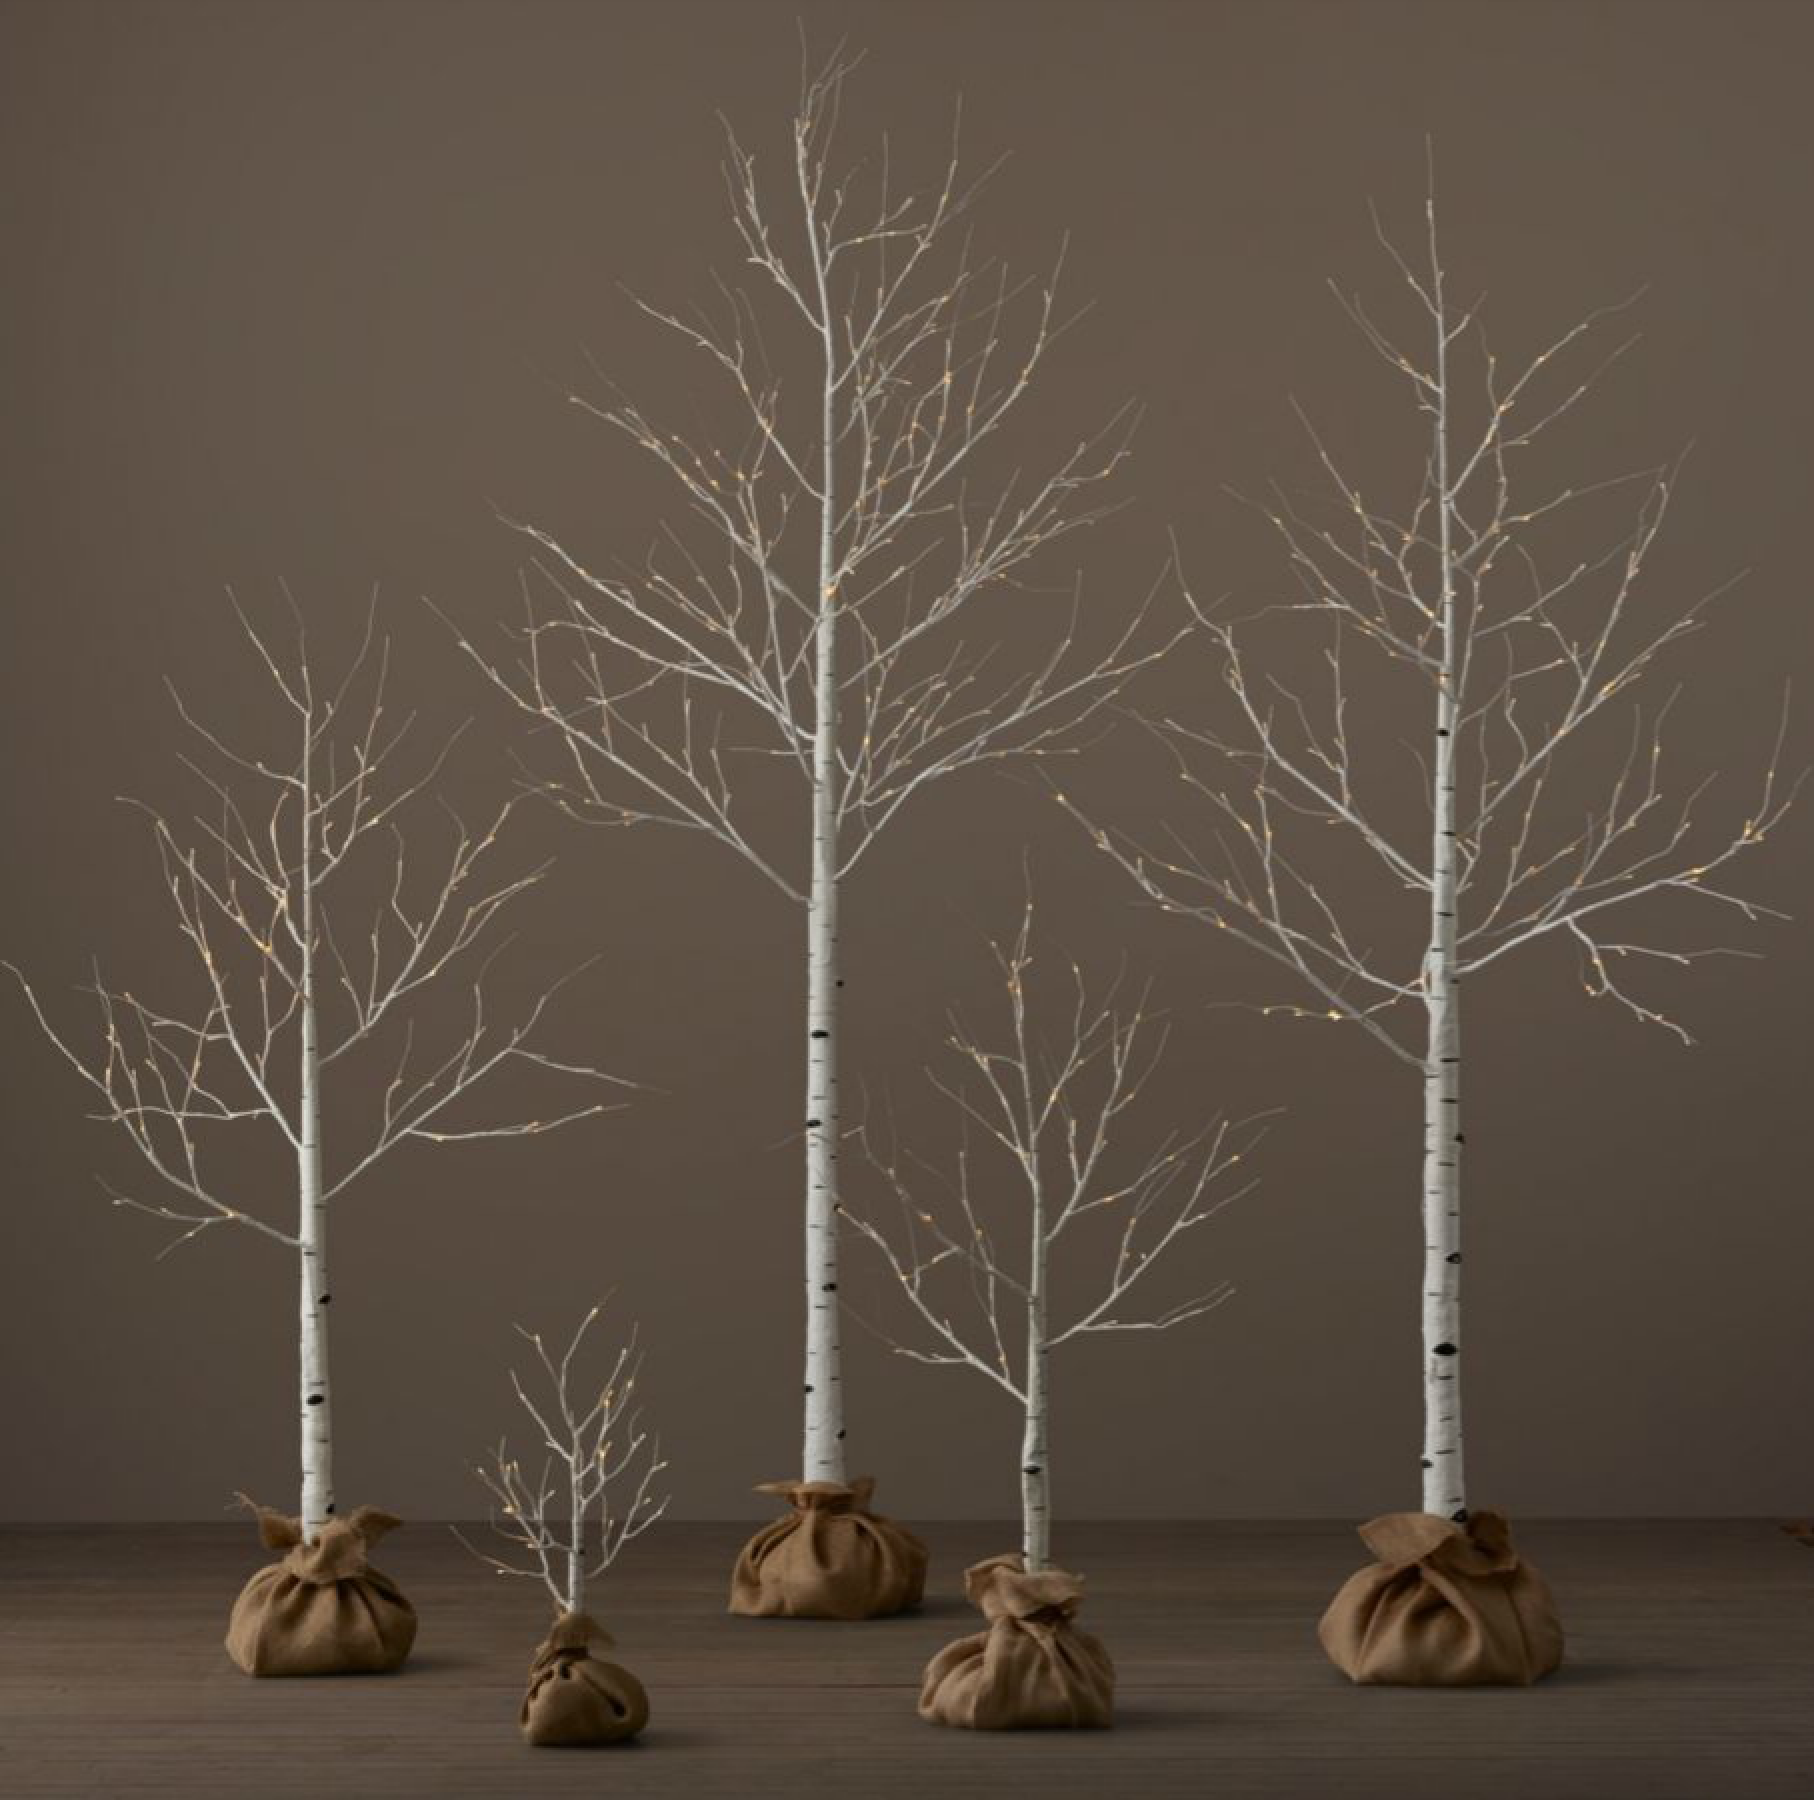 Home Office Decor, Birch Trees, Office Designs, Outdoor Settings, Christmas